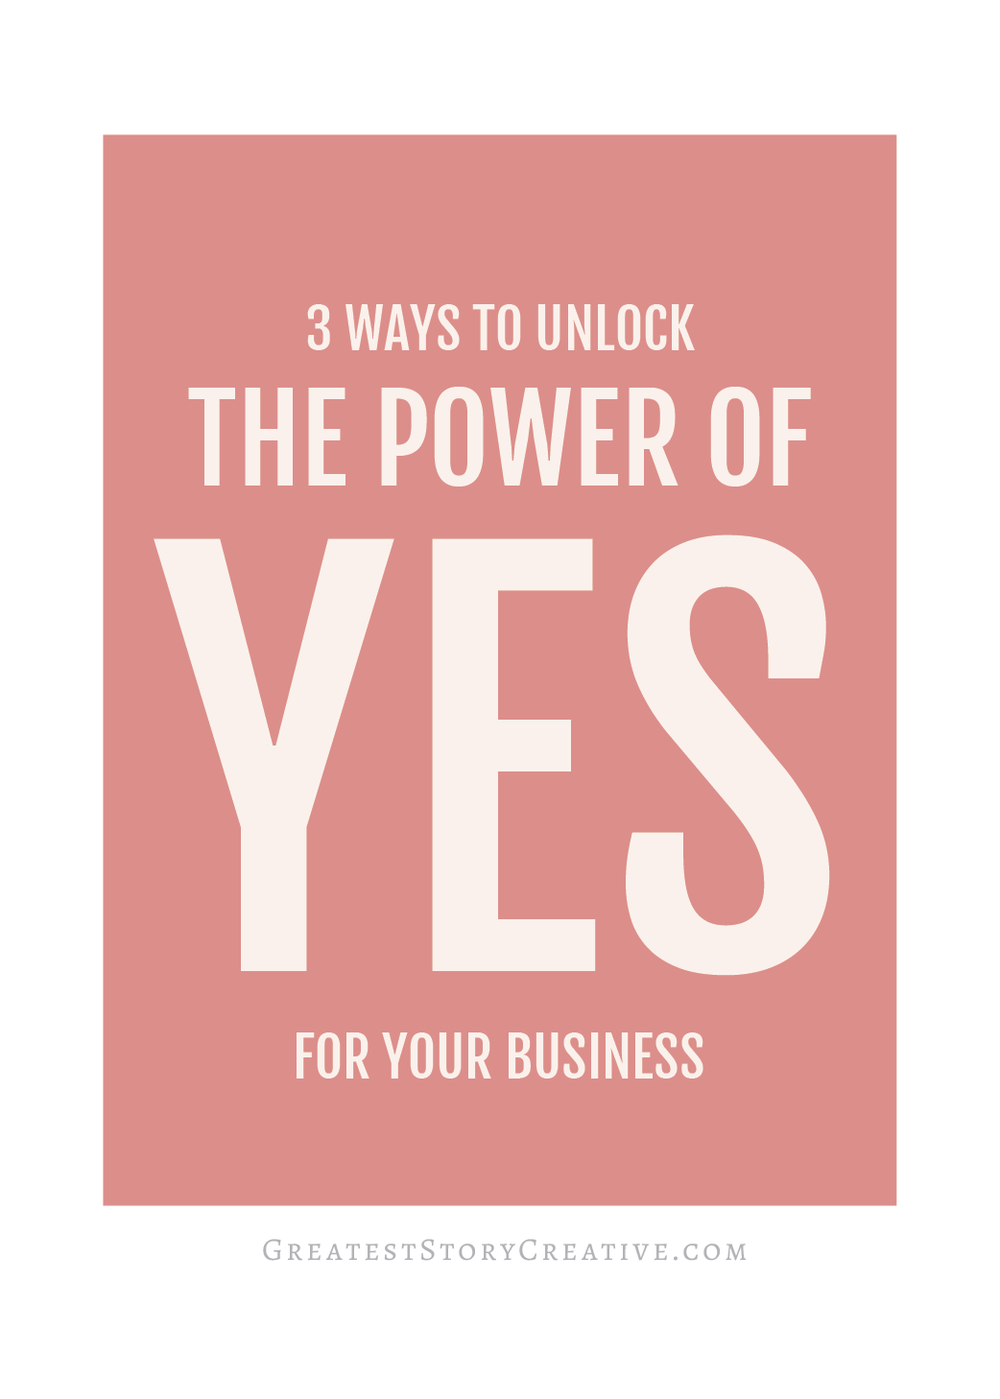 3 Ways to Use the Power of Yes in Your Business | Greatest Story for Business Blog